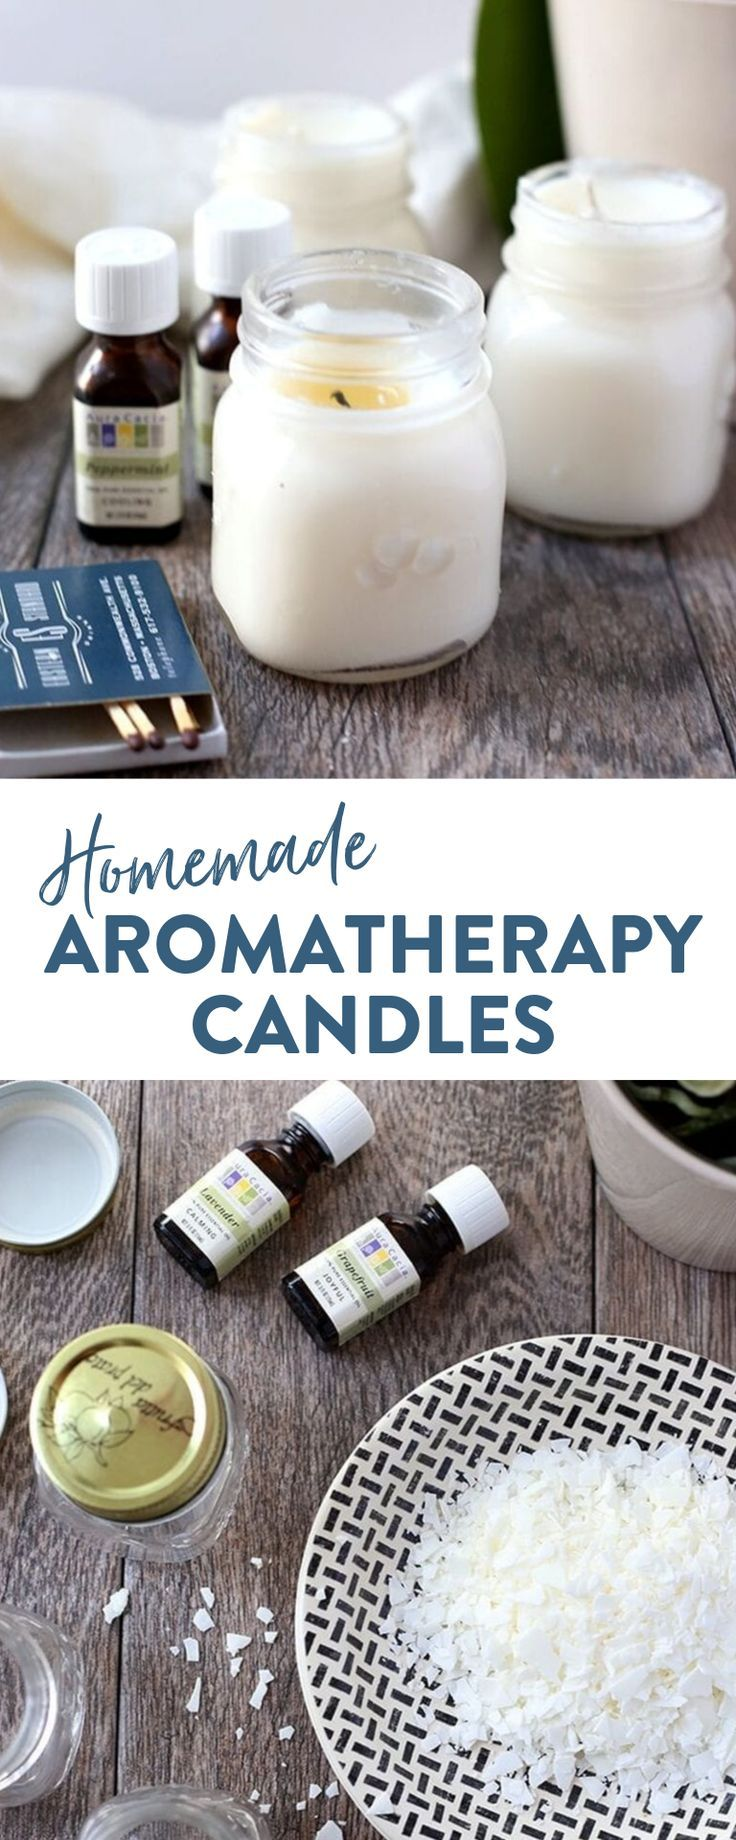 Homemade Aromatherapy Candles - The Healthy Maven